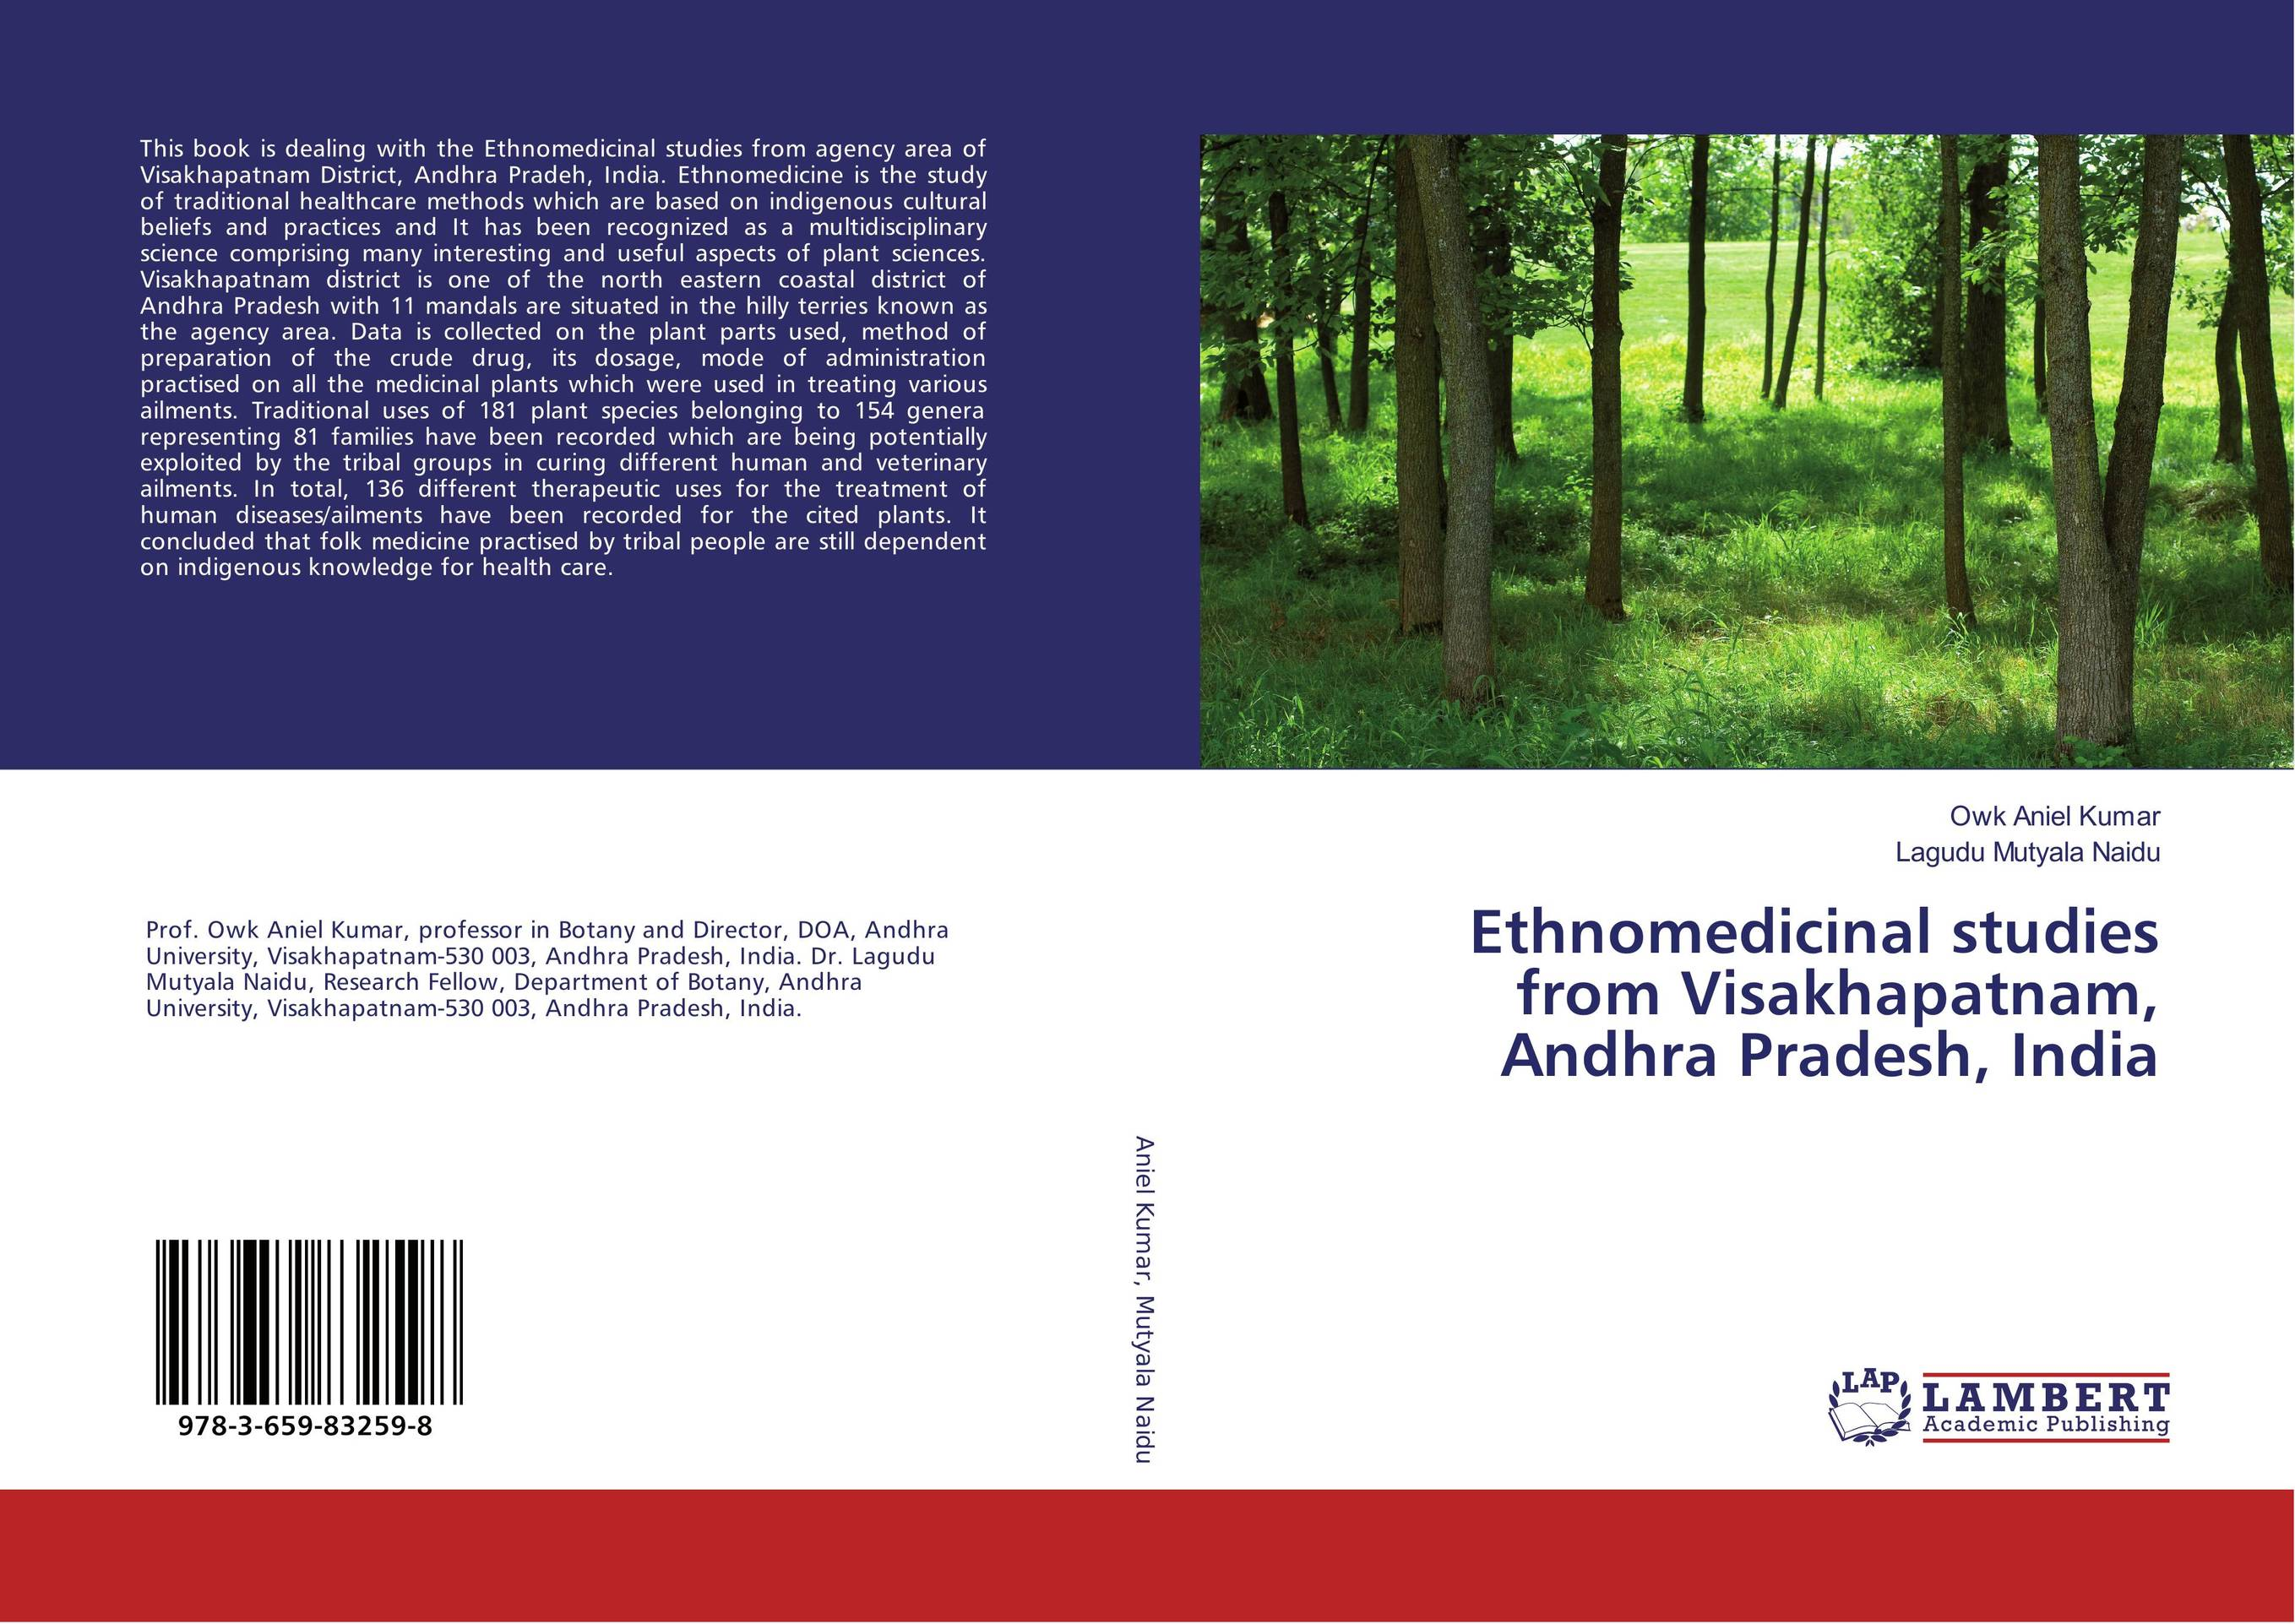 Ethnomedicinal studies from Visakhapatnam, Andhra Pradesh, India geochemistry of groundwater in a river basin of andhra pradesh india